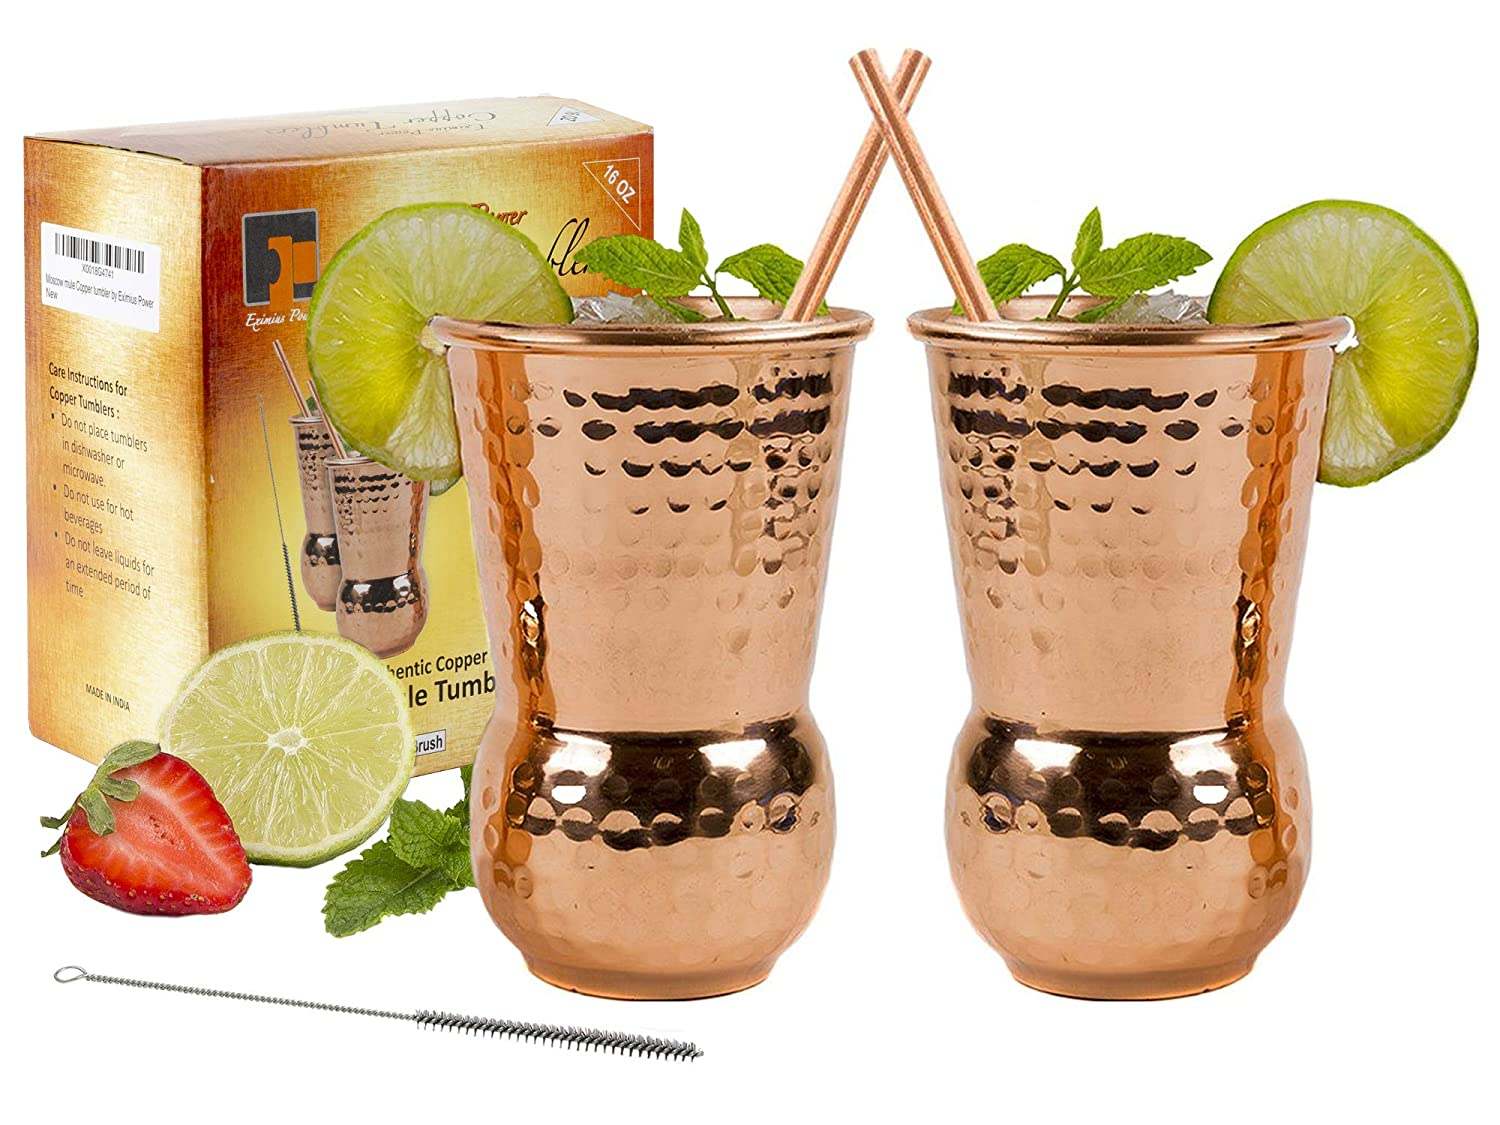 Eximius Power Moscow Mule Copper Mugs - Copper Tumbler Cups 100% pure copper glass for mule recipe cocktail beverages drinks for men, Handcrafted, 16oz, Set Of 2,20 Gauge Hammered design in a Gift Box SYNCHKG110893